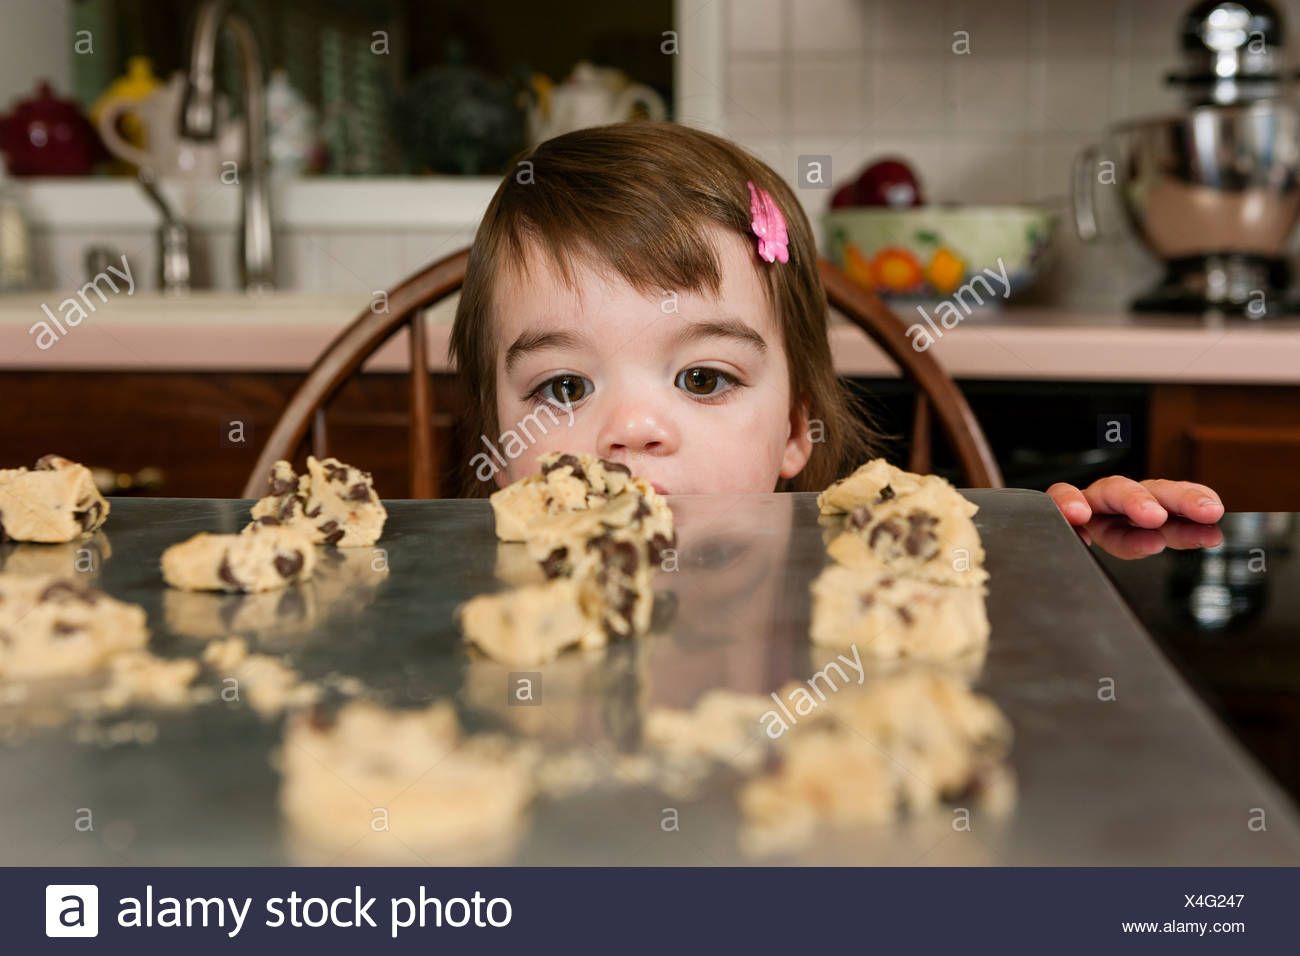 Close up portrait of young female toddler looking at currant cakes - Stock Image